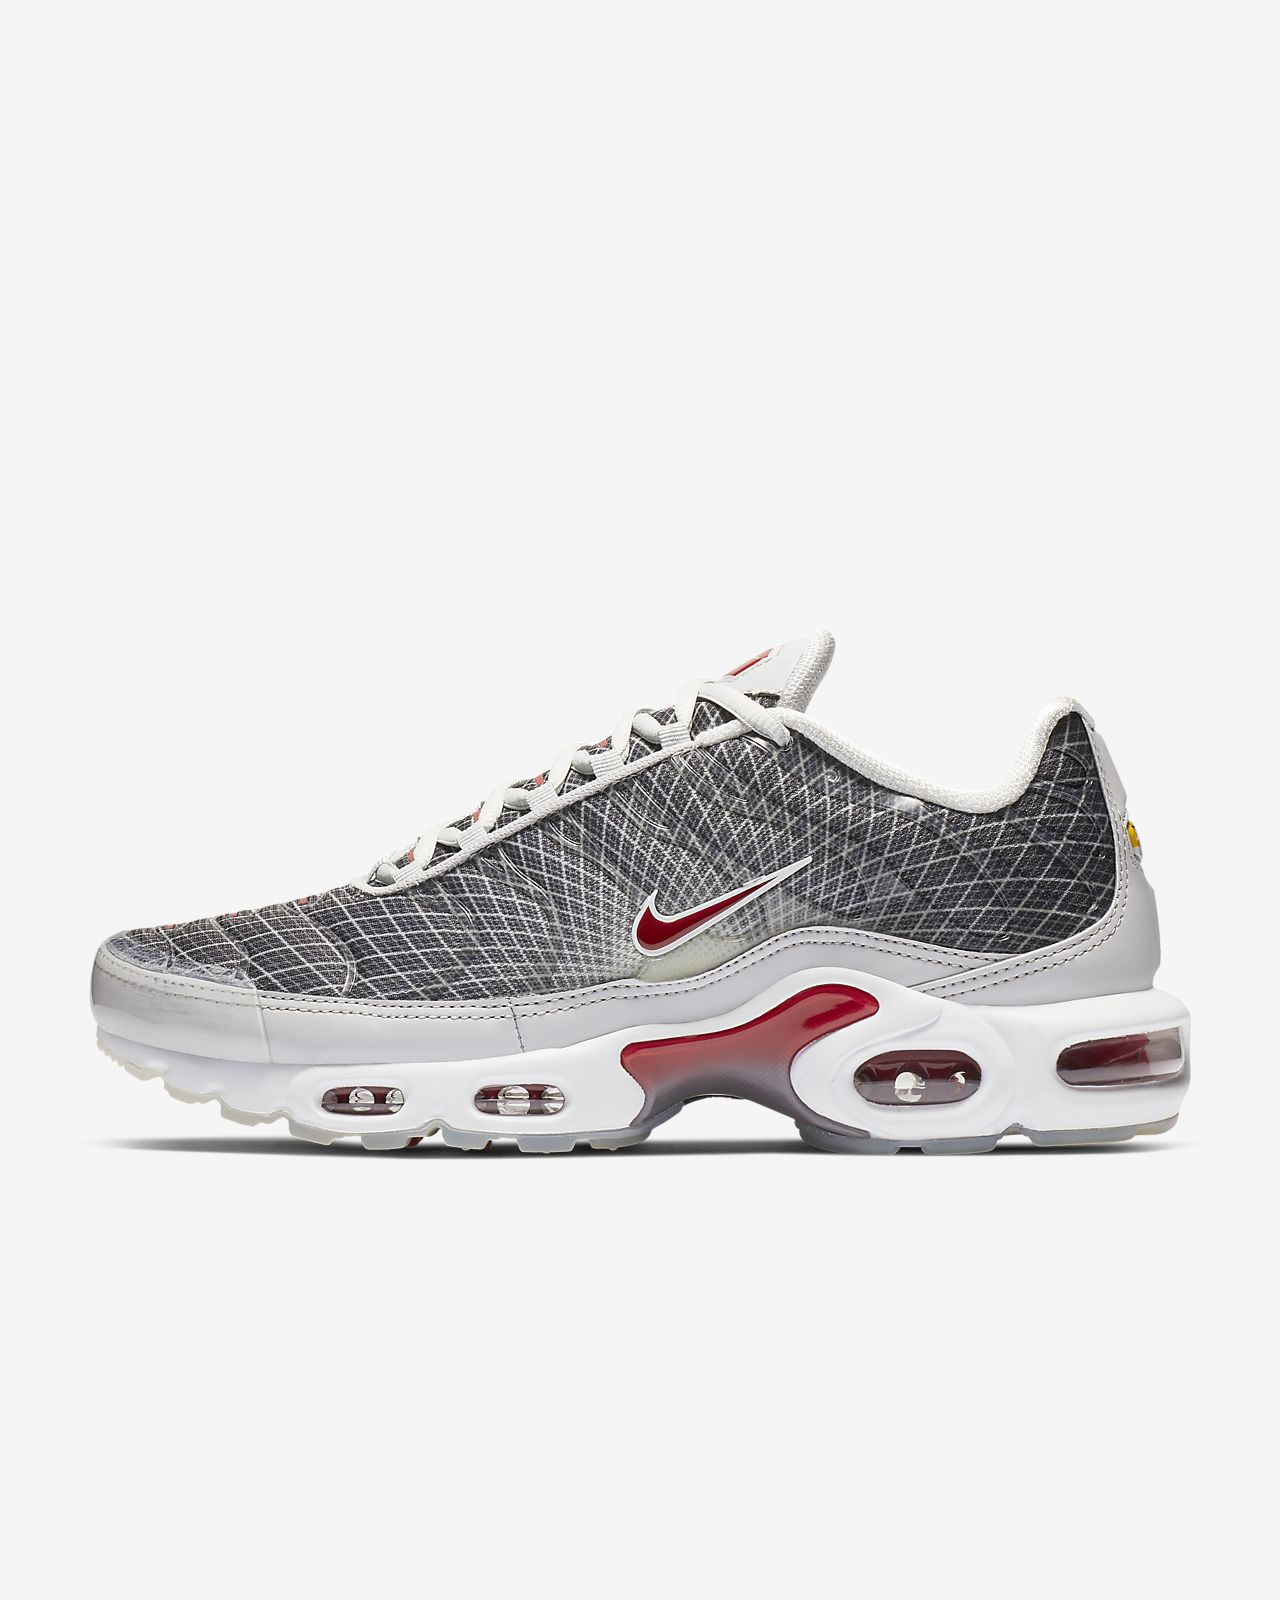 promo code a0b37 fe5df Nike Air Max Plus OG Shoe